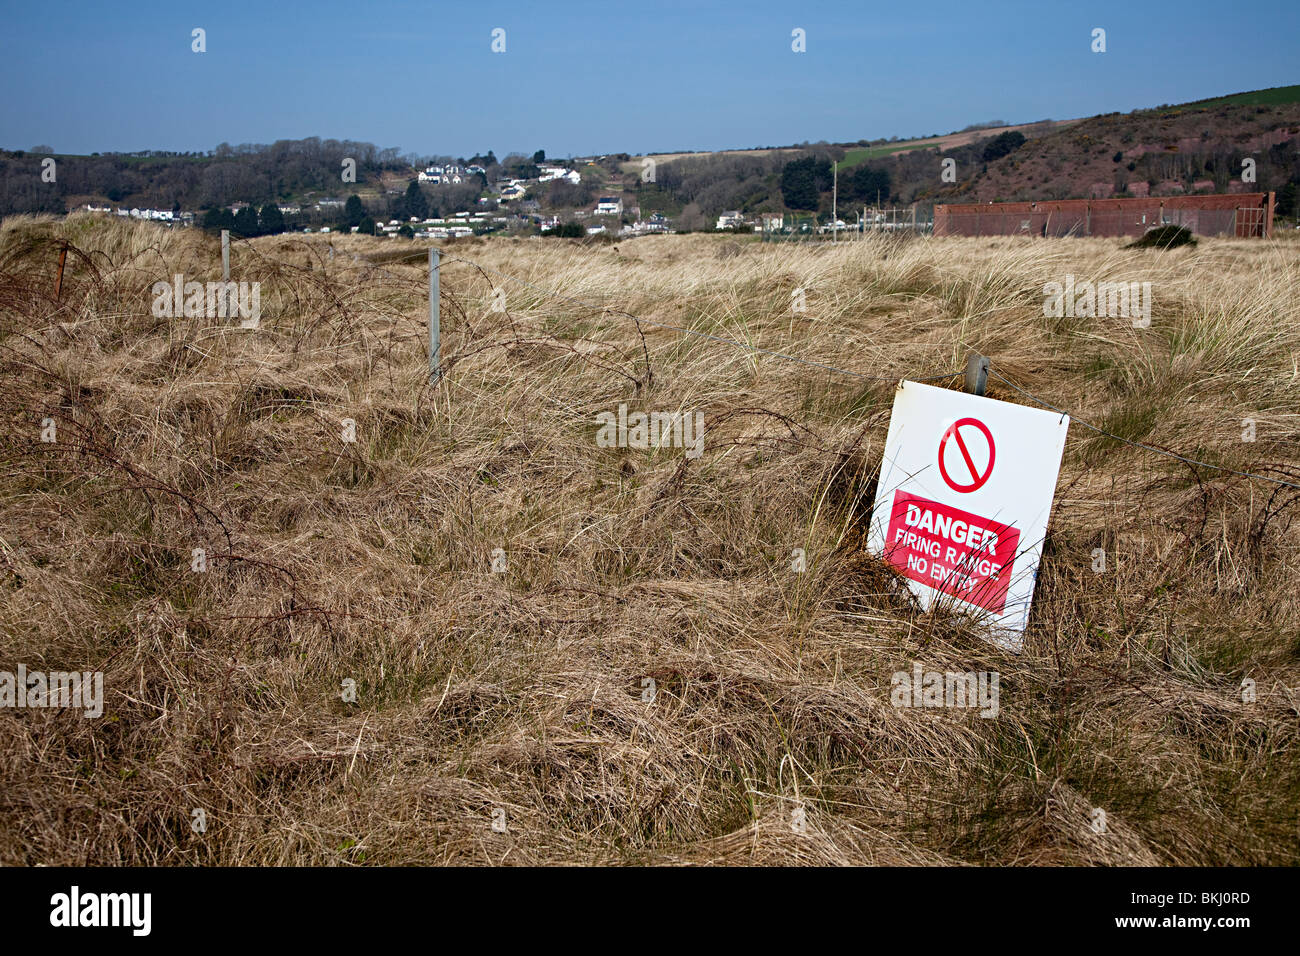 MOD danger firing range no entry sign on barbed wire Pendine Wales UK - Stock Image